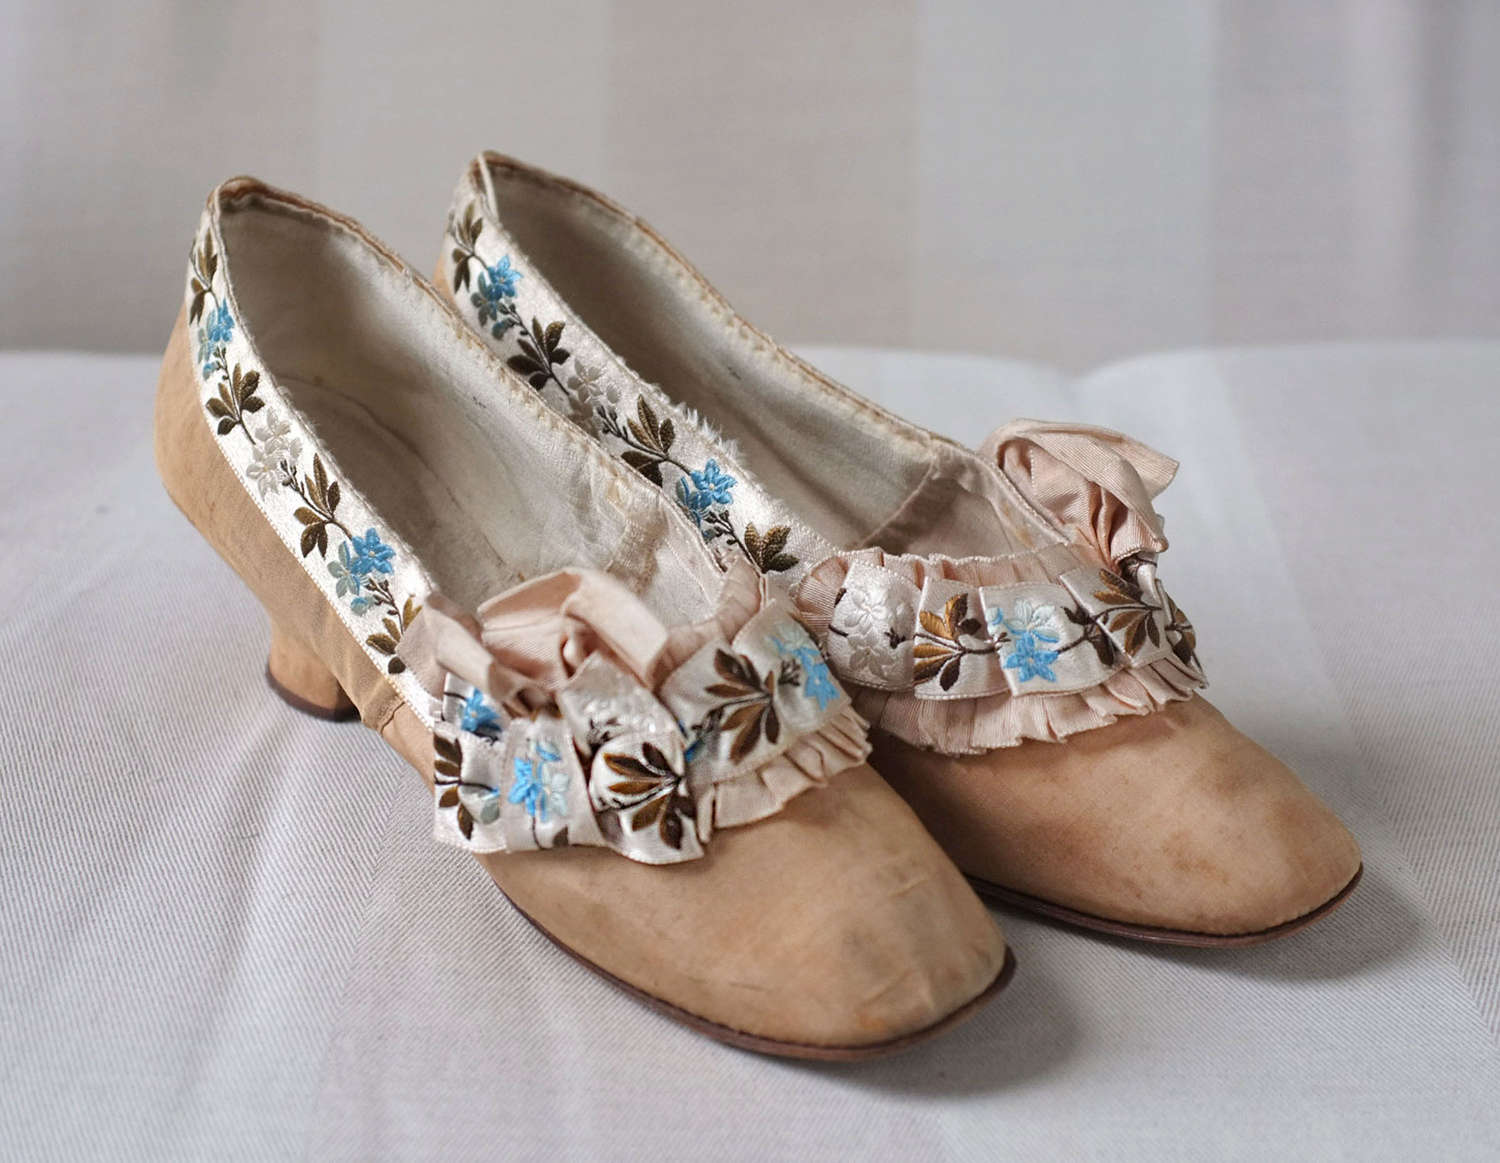 Paris Made Ribbon Trimmed Shoes circa 1880